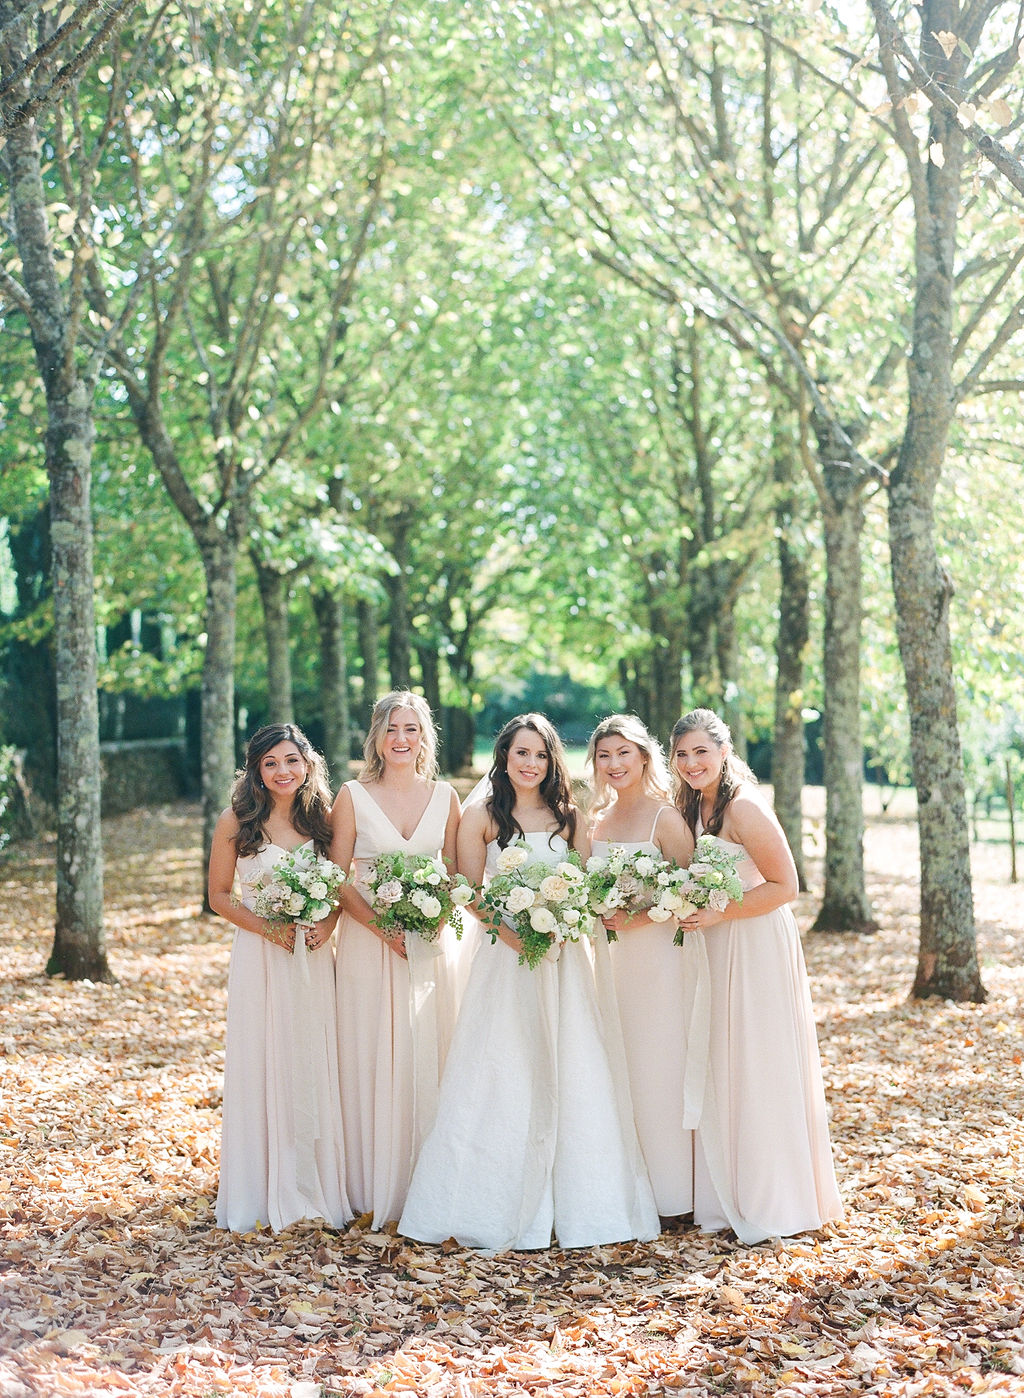 bride posing with bridesmaids surrounded by trees